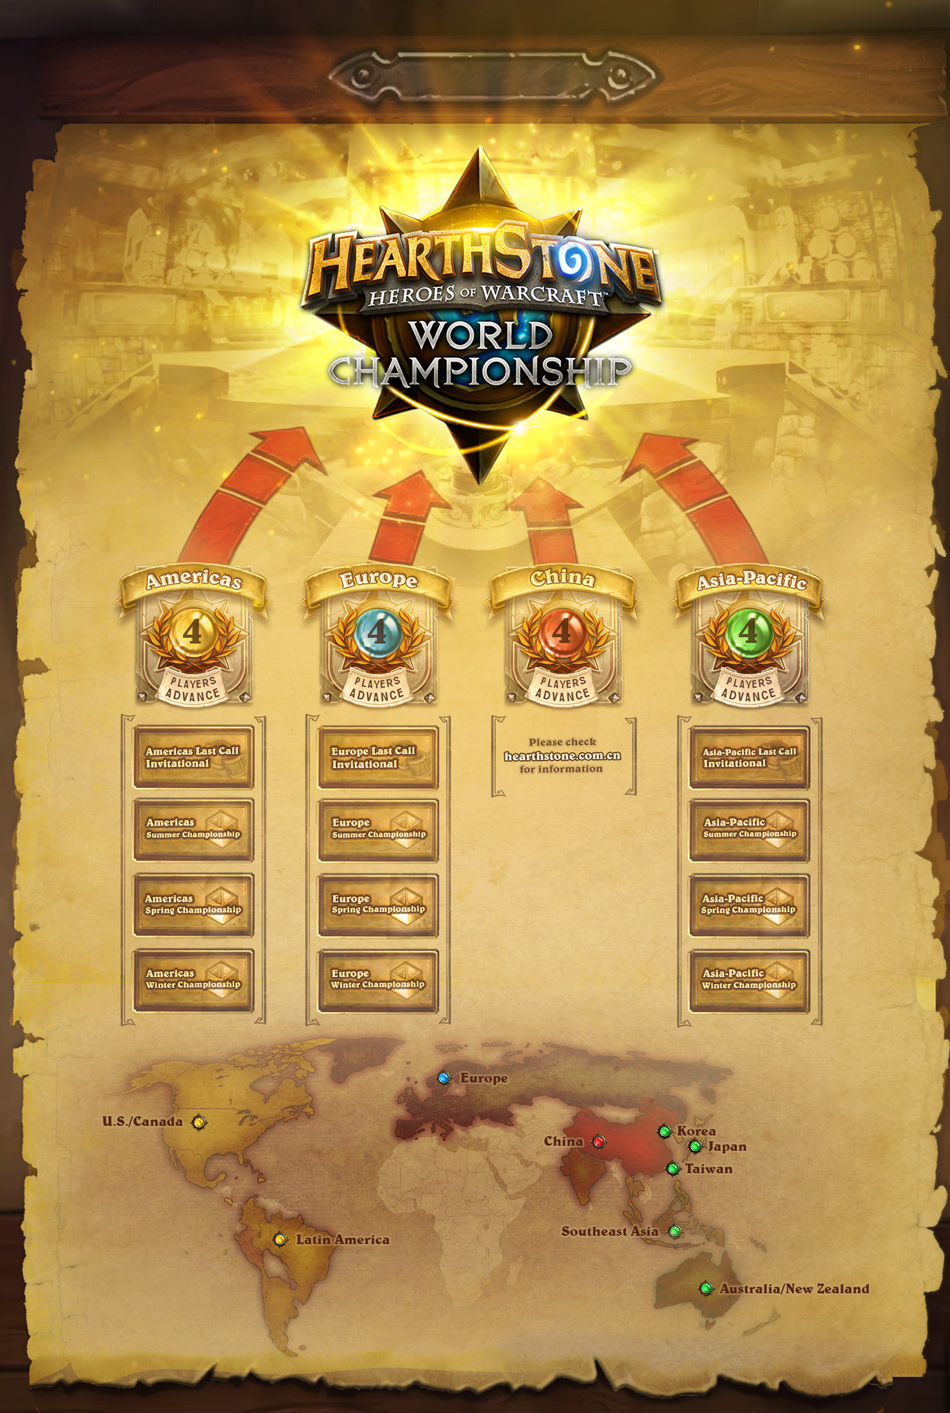 2016 Hearthstone World Championship Hearthstone Wiki